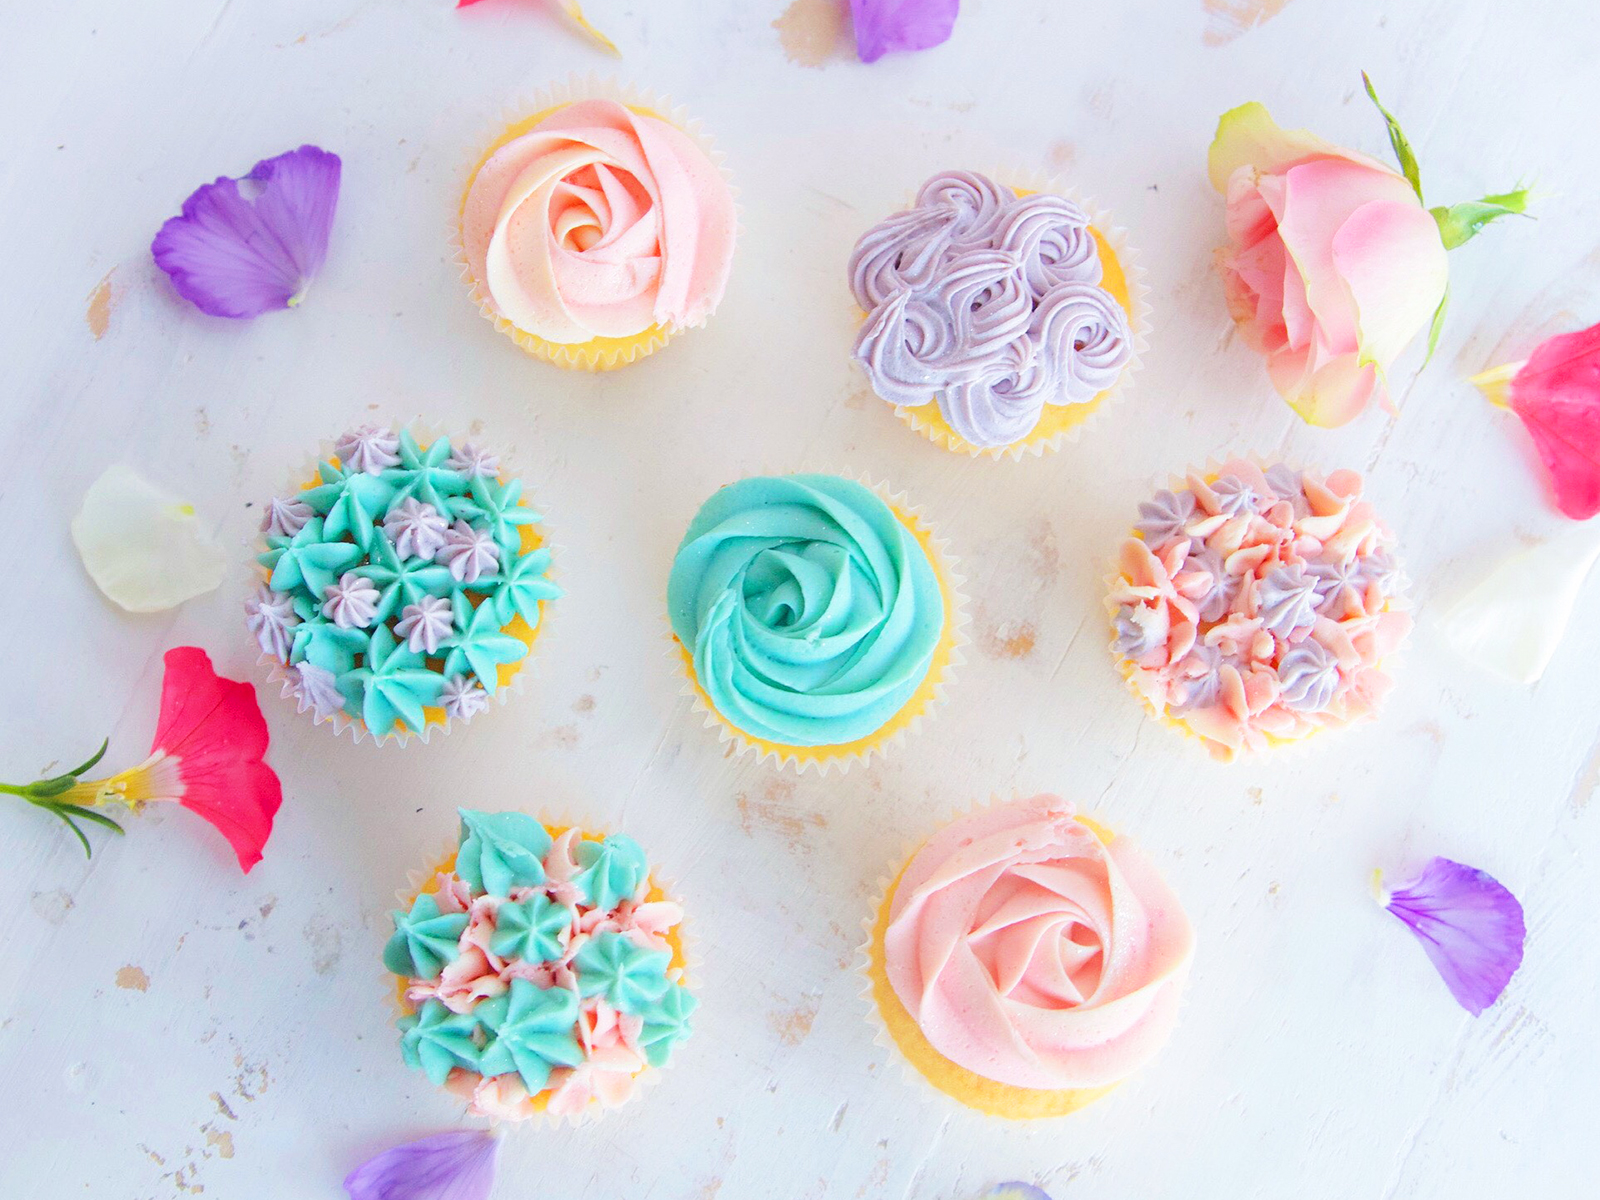 The Most Beautiful Buttercream Flowers on Instagram